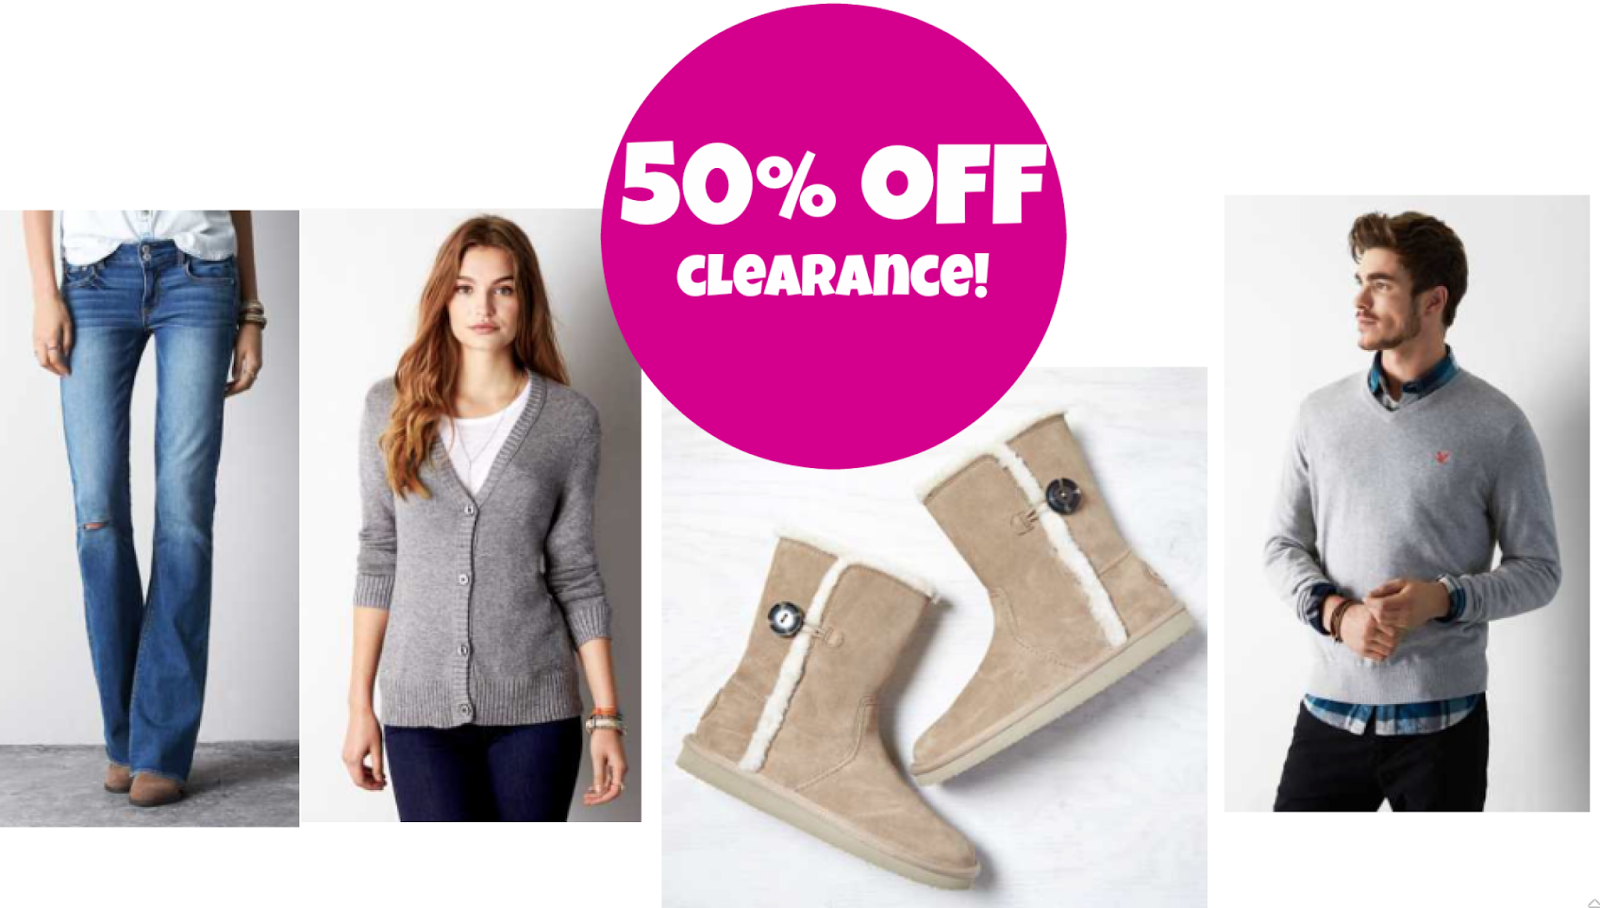 http://www.thebinderladies.com/2015/01/american-eagle-50-off-clearance-prices.html#.VLRt0ofduyM